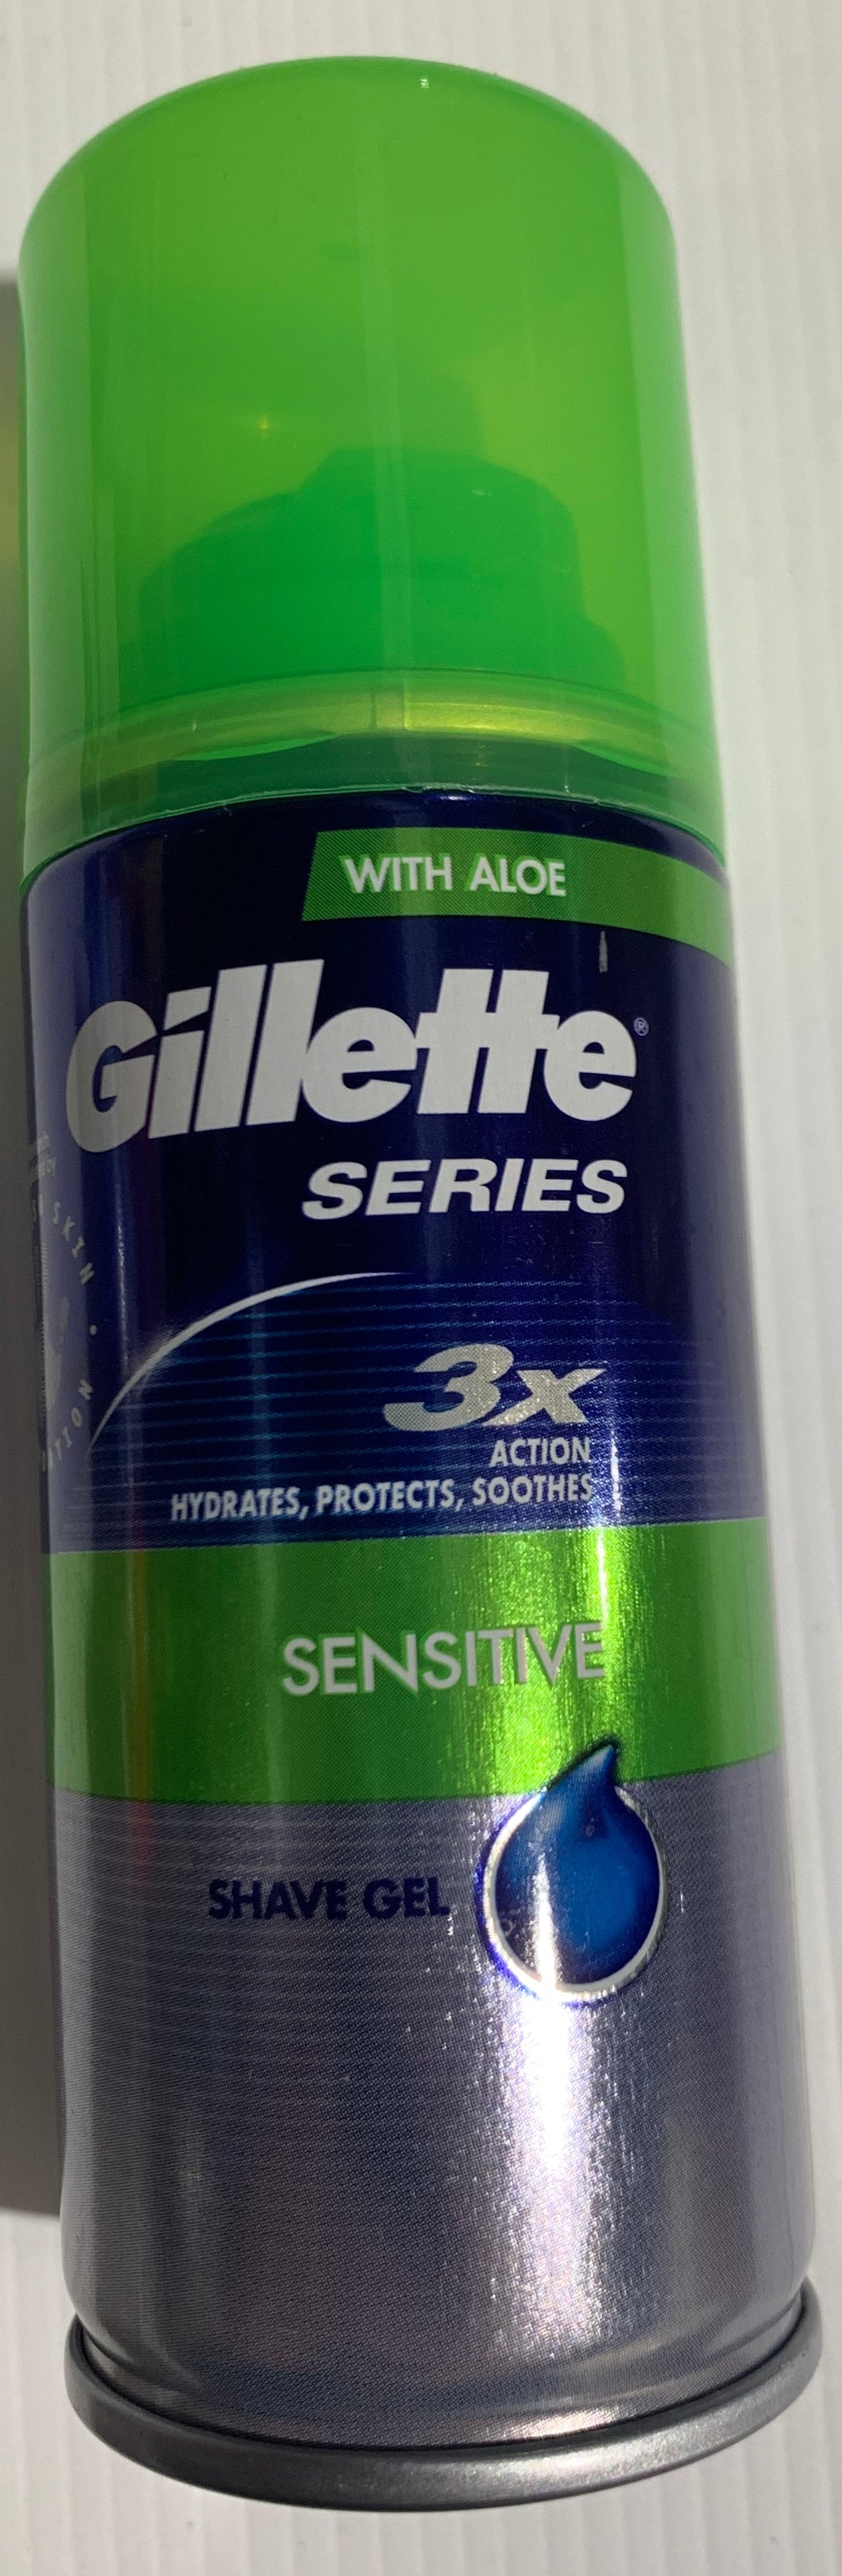 Gillette 3X Sensitive SHAVE GEL 75ml